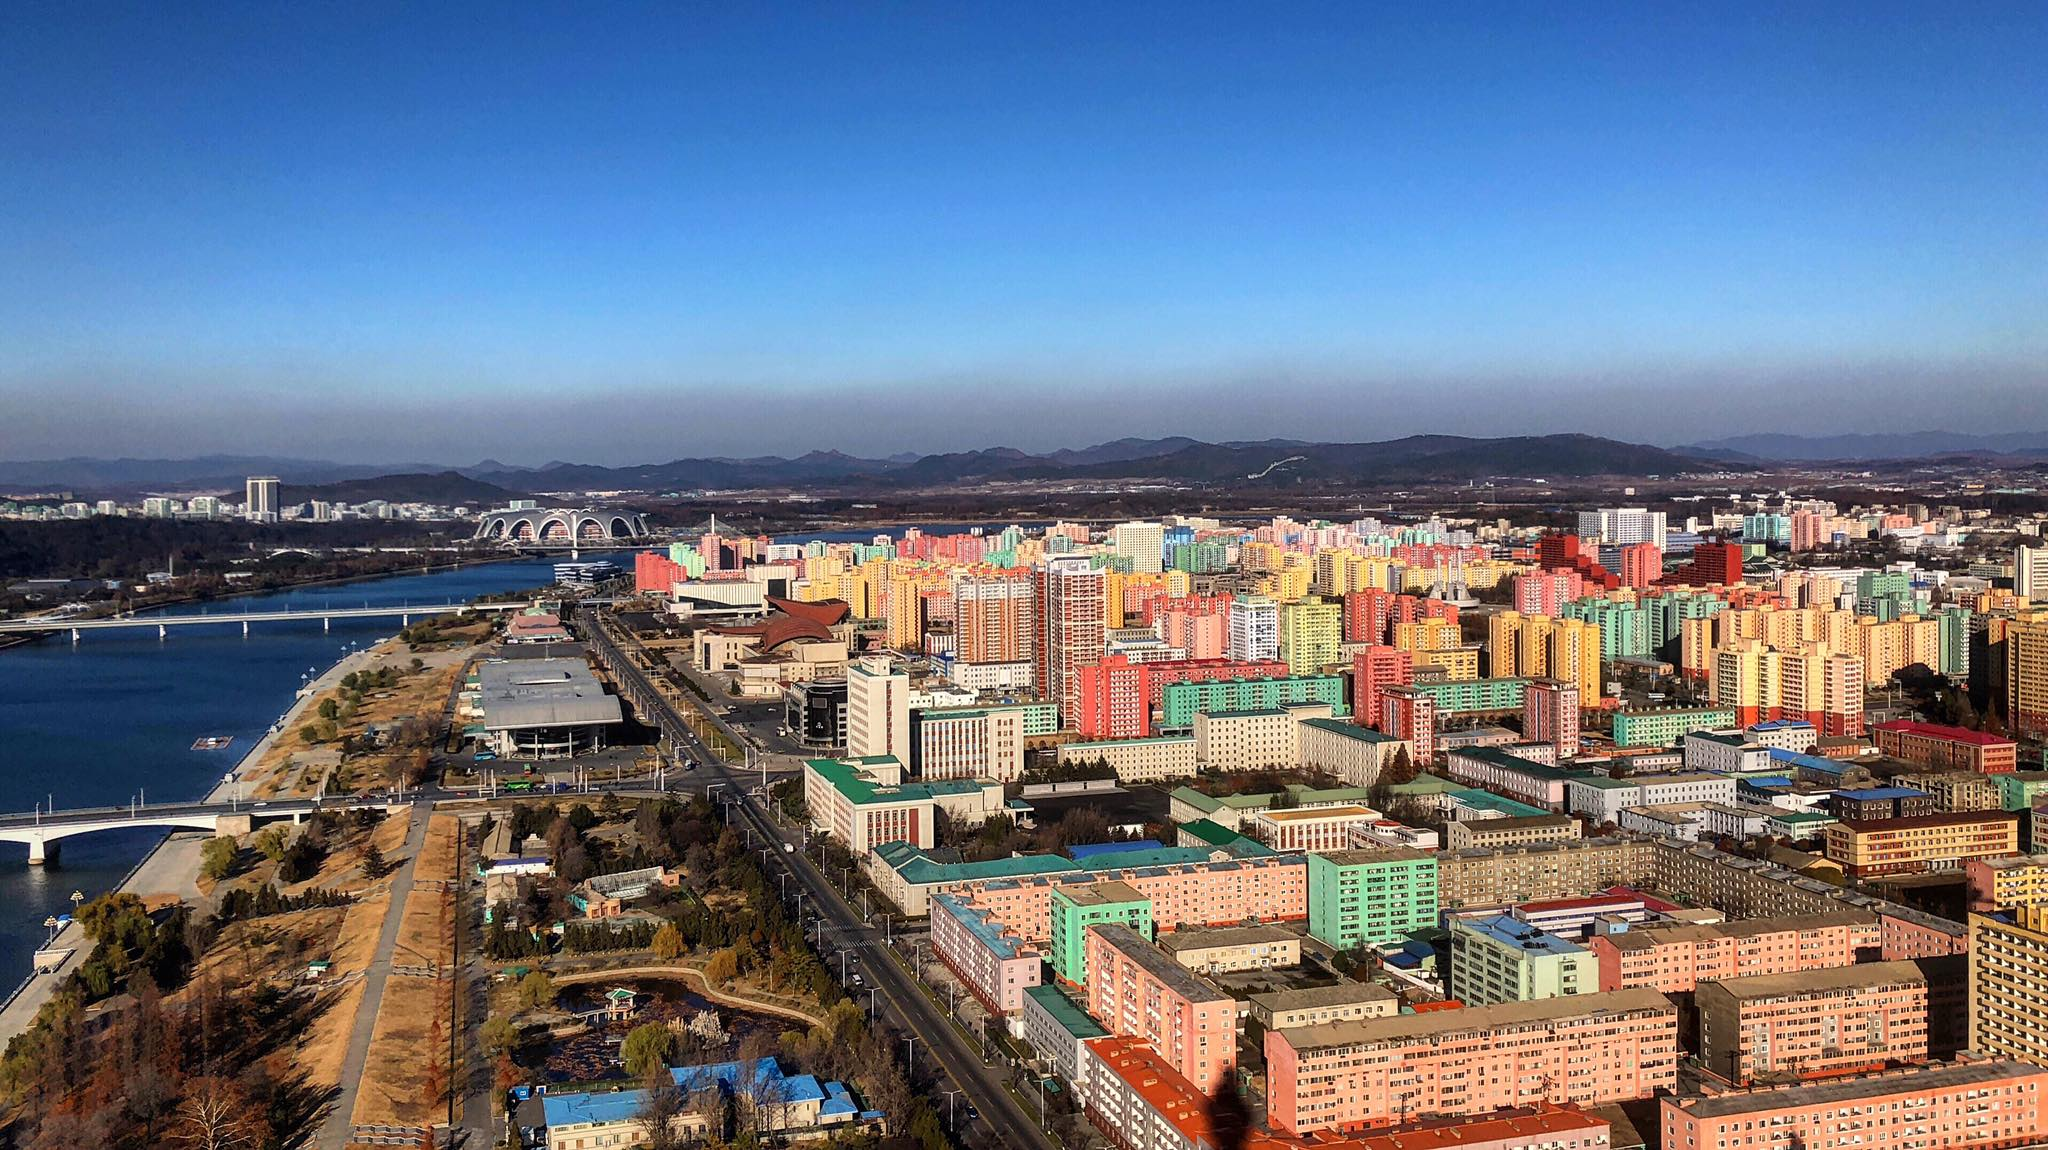 The other side of Pyongyang - Photo Credit: Crooked Compass